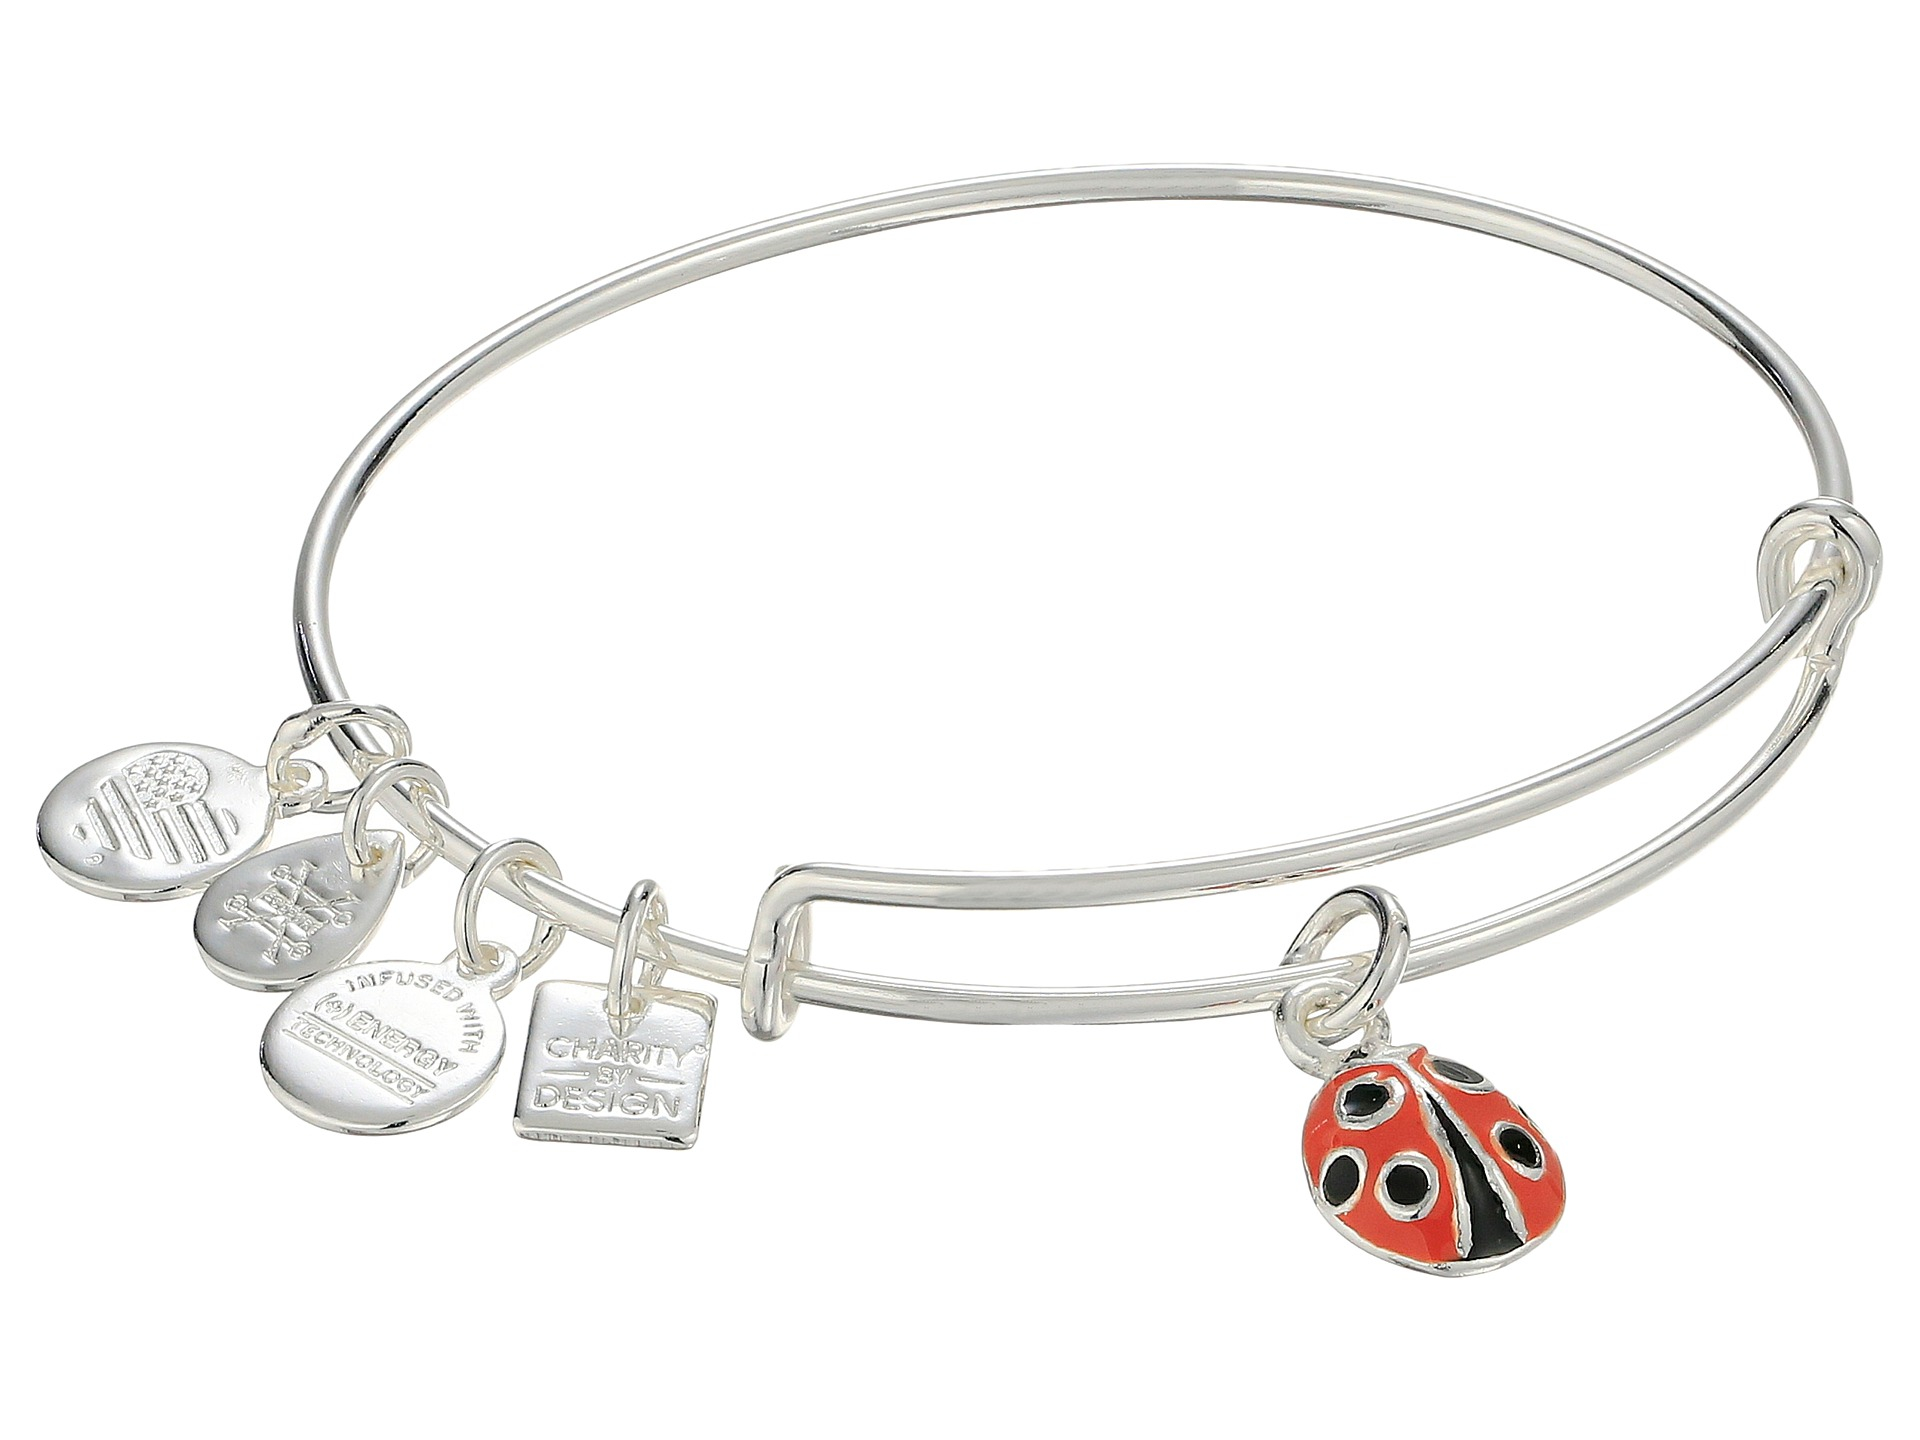 alex and ani charity by design bug bracelet in